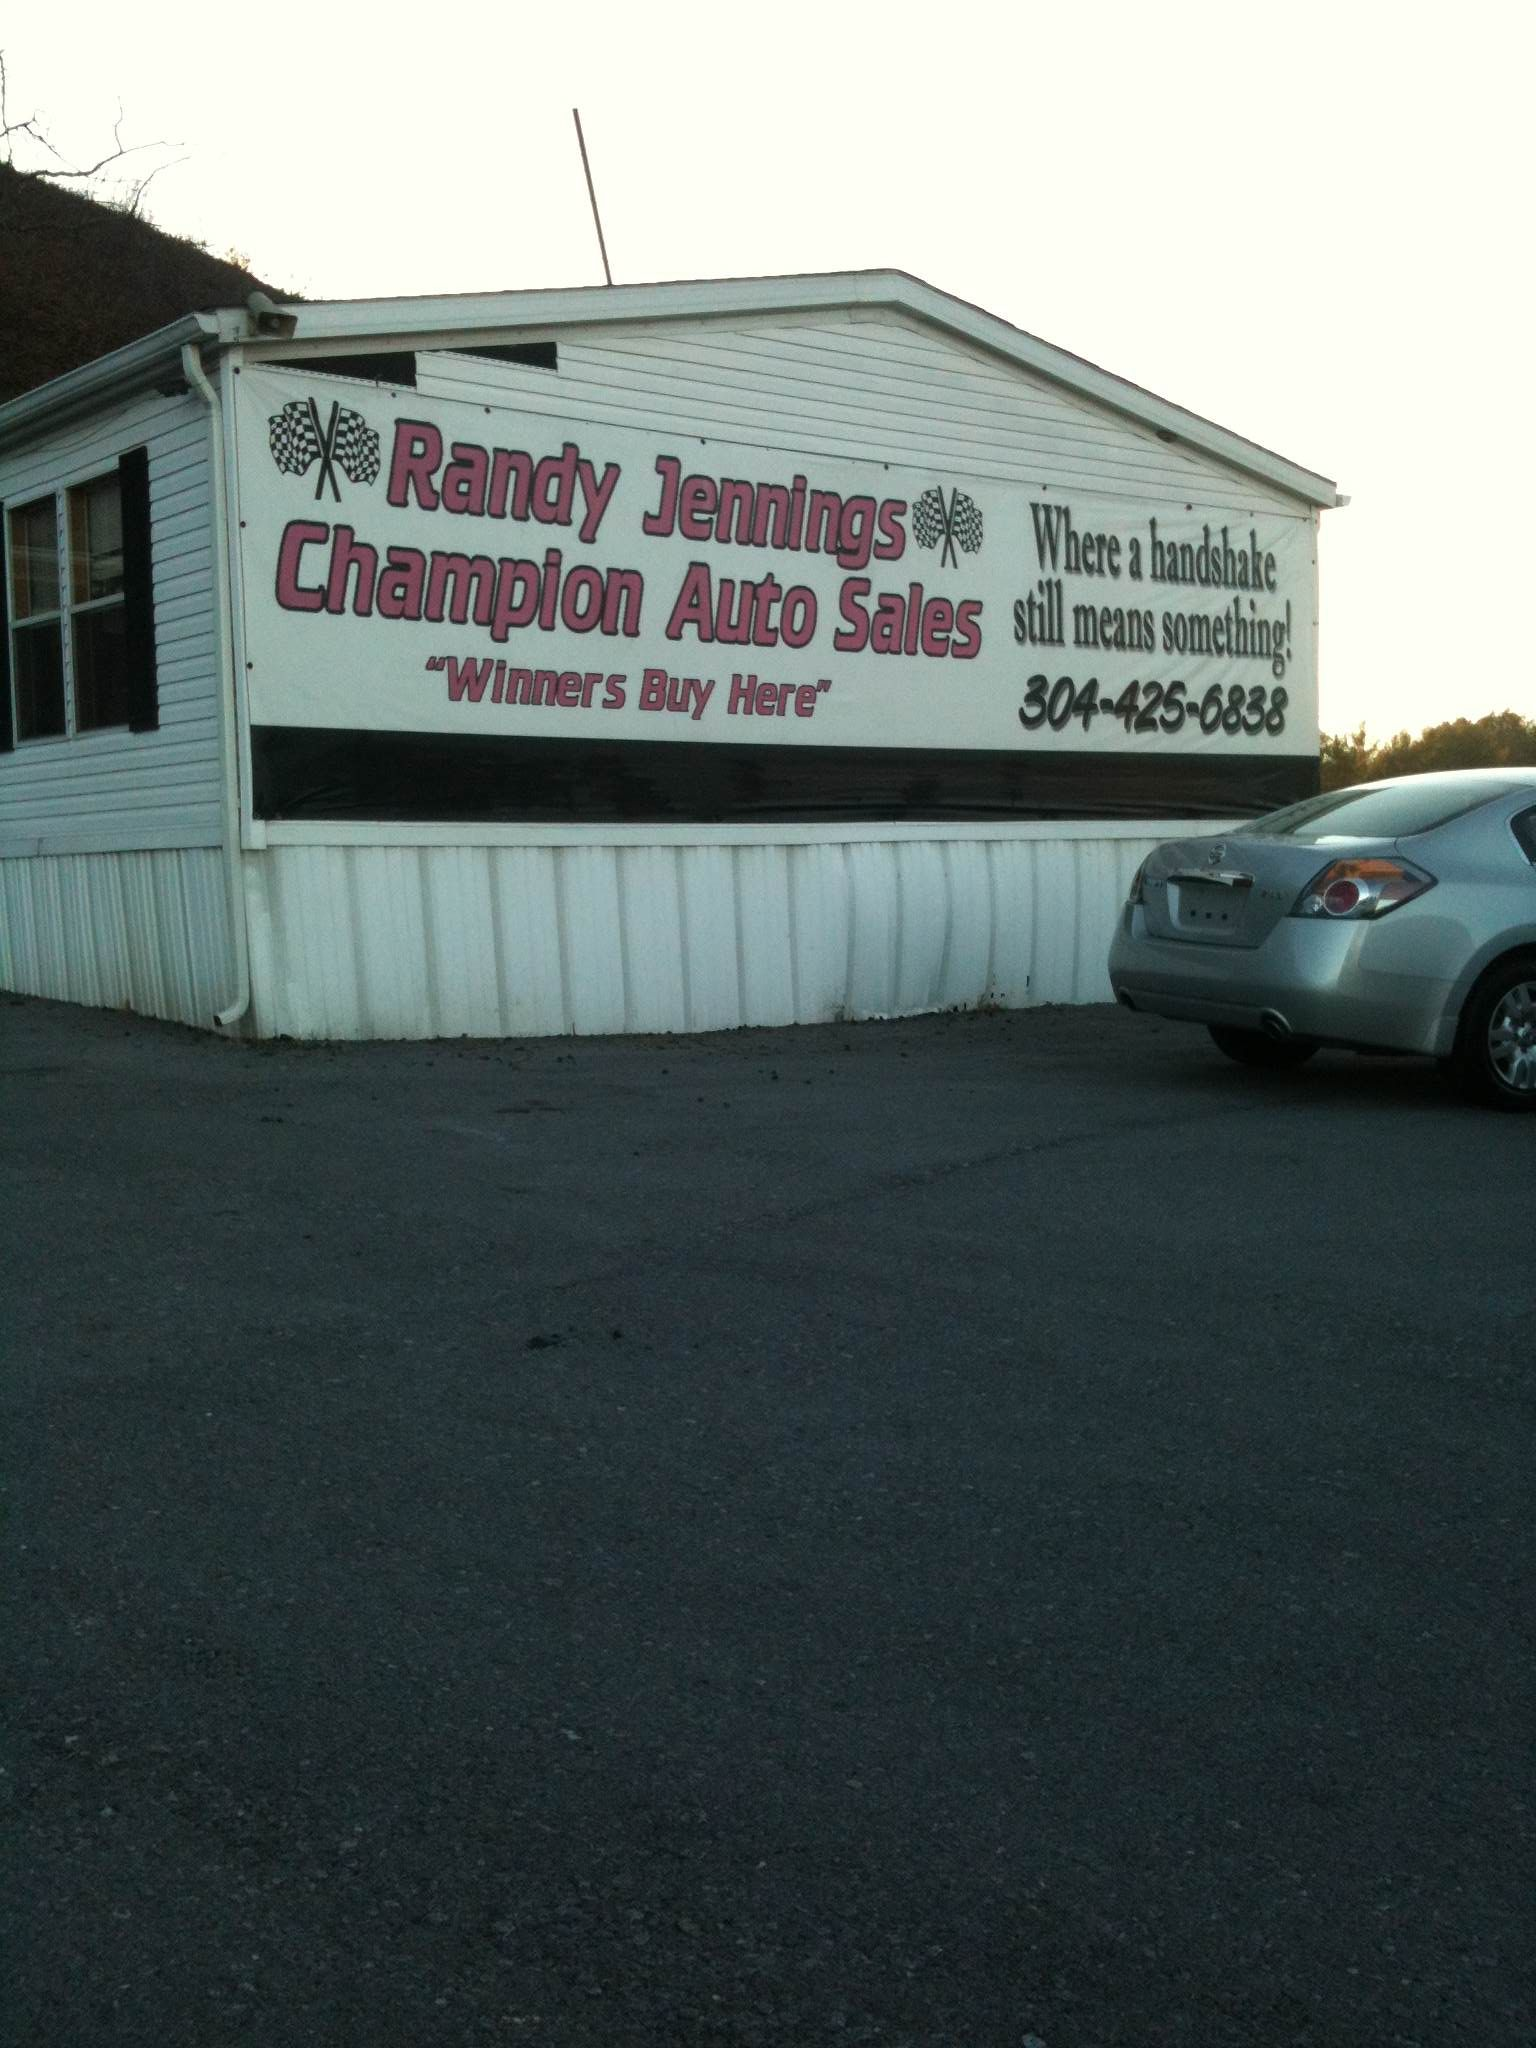 Champion PreOwned Auto Sales has been in business for 12